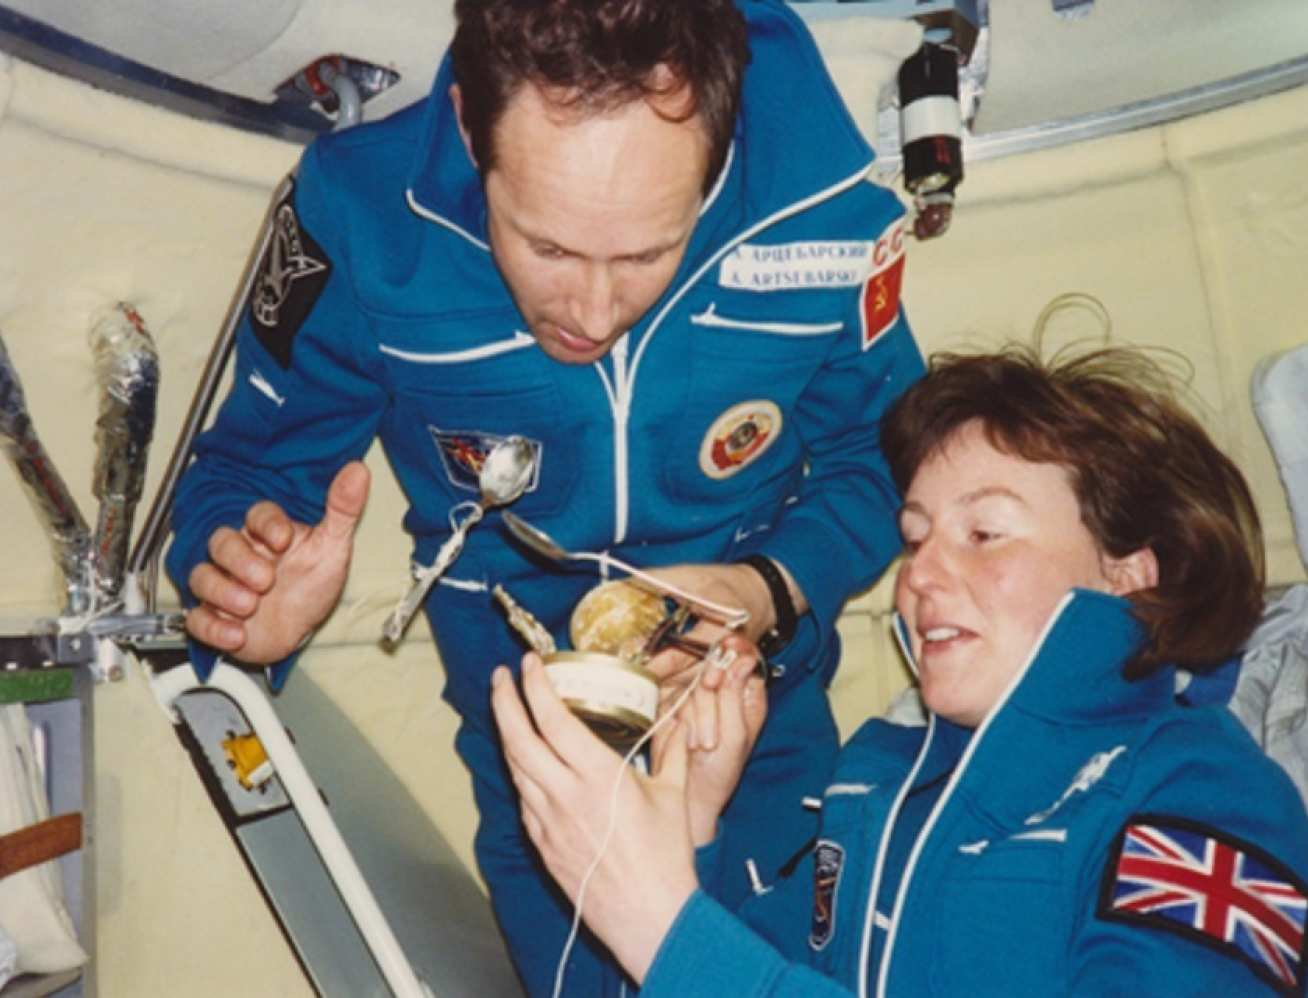 Two people eating from a can on a space station